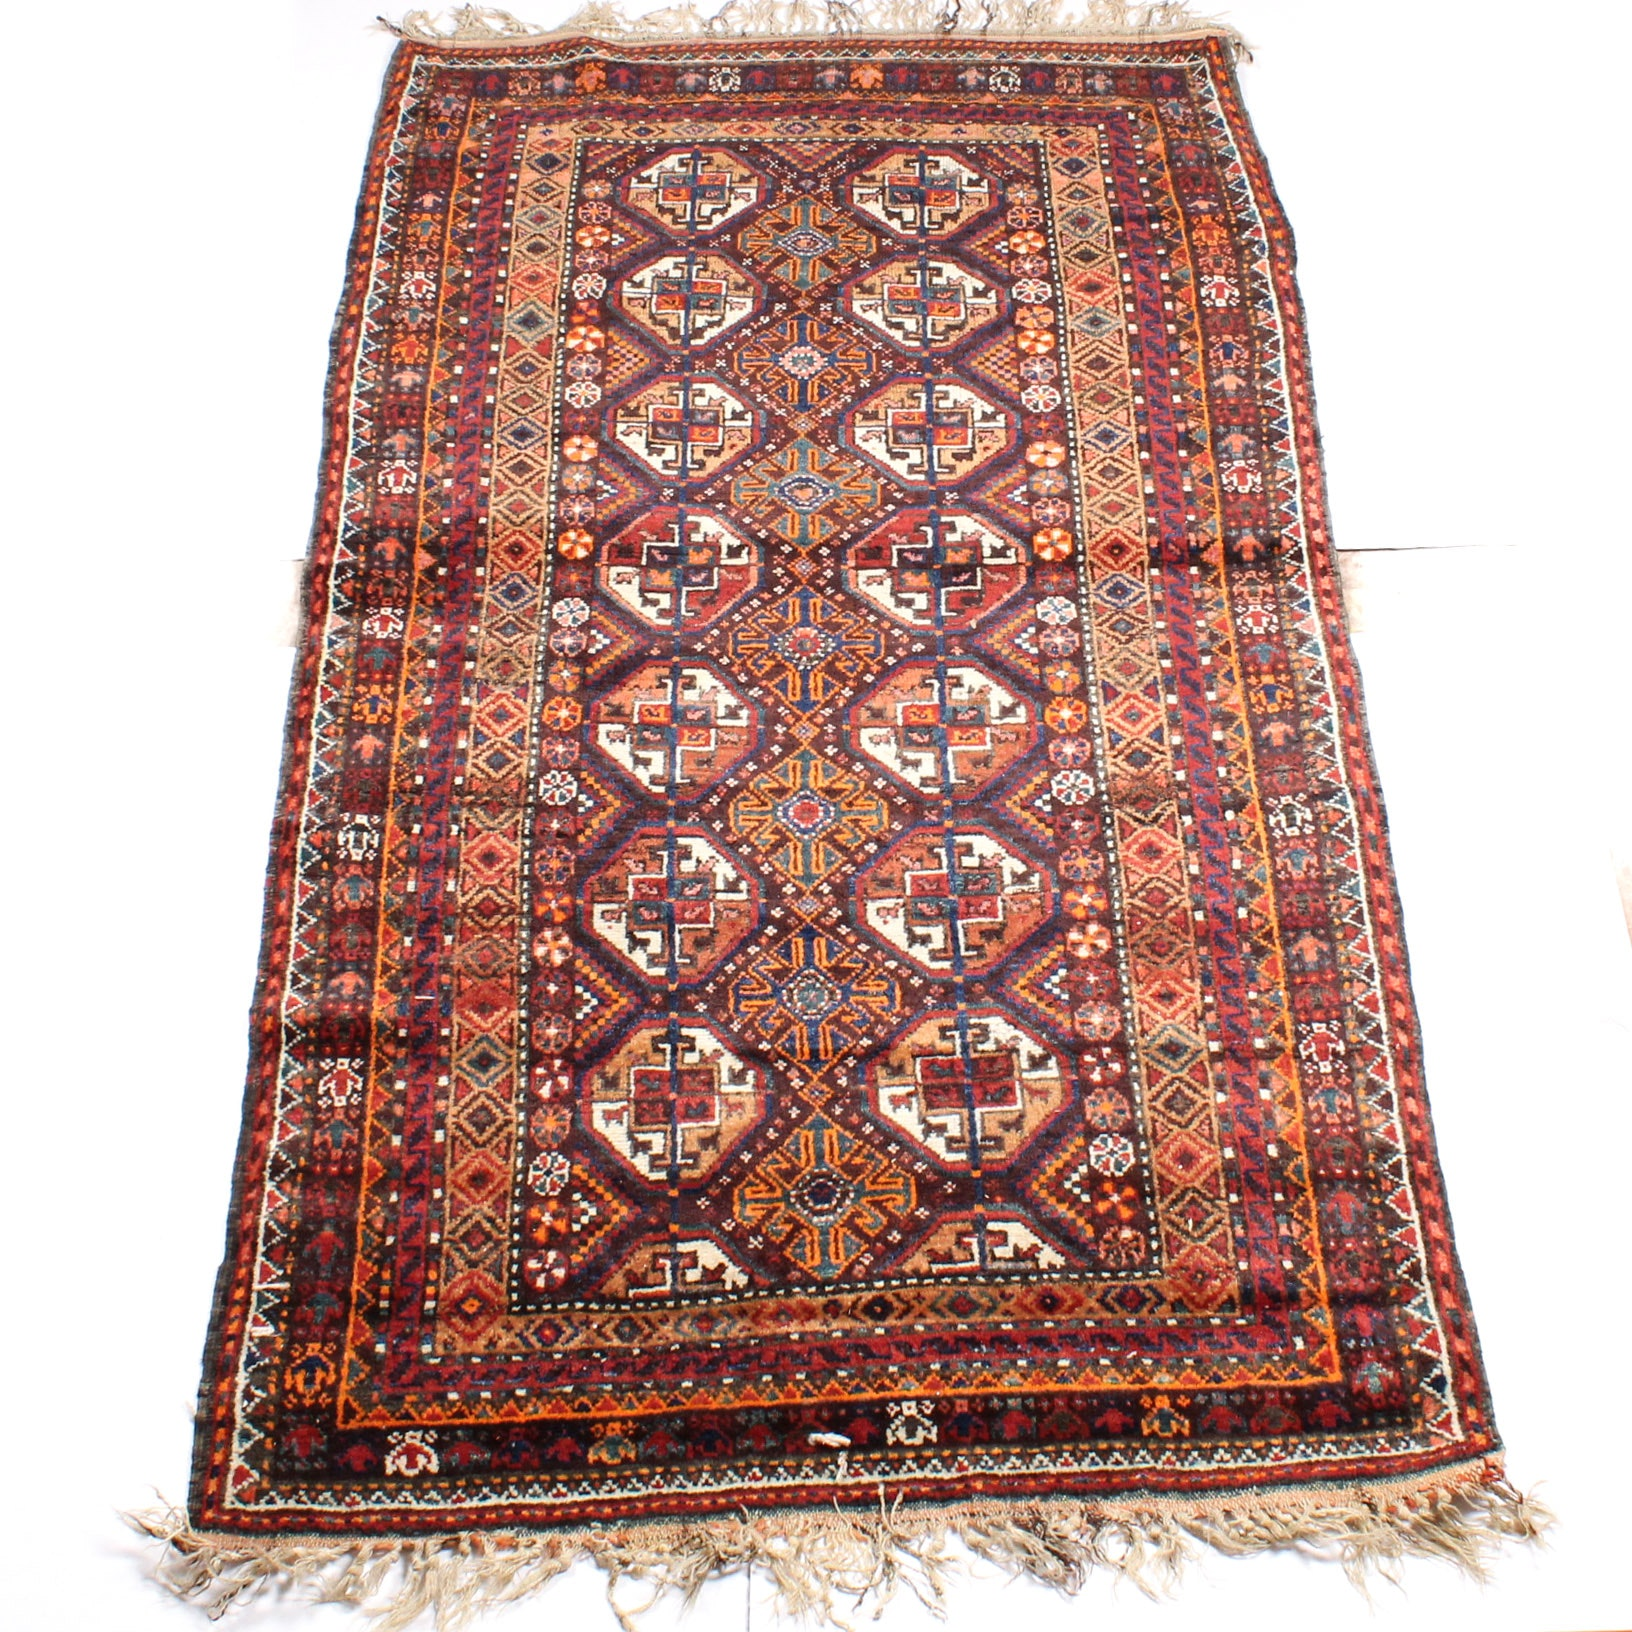 Hand-Knotted Persian Baluch Long Rug, circa 1910